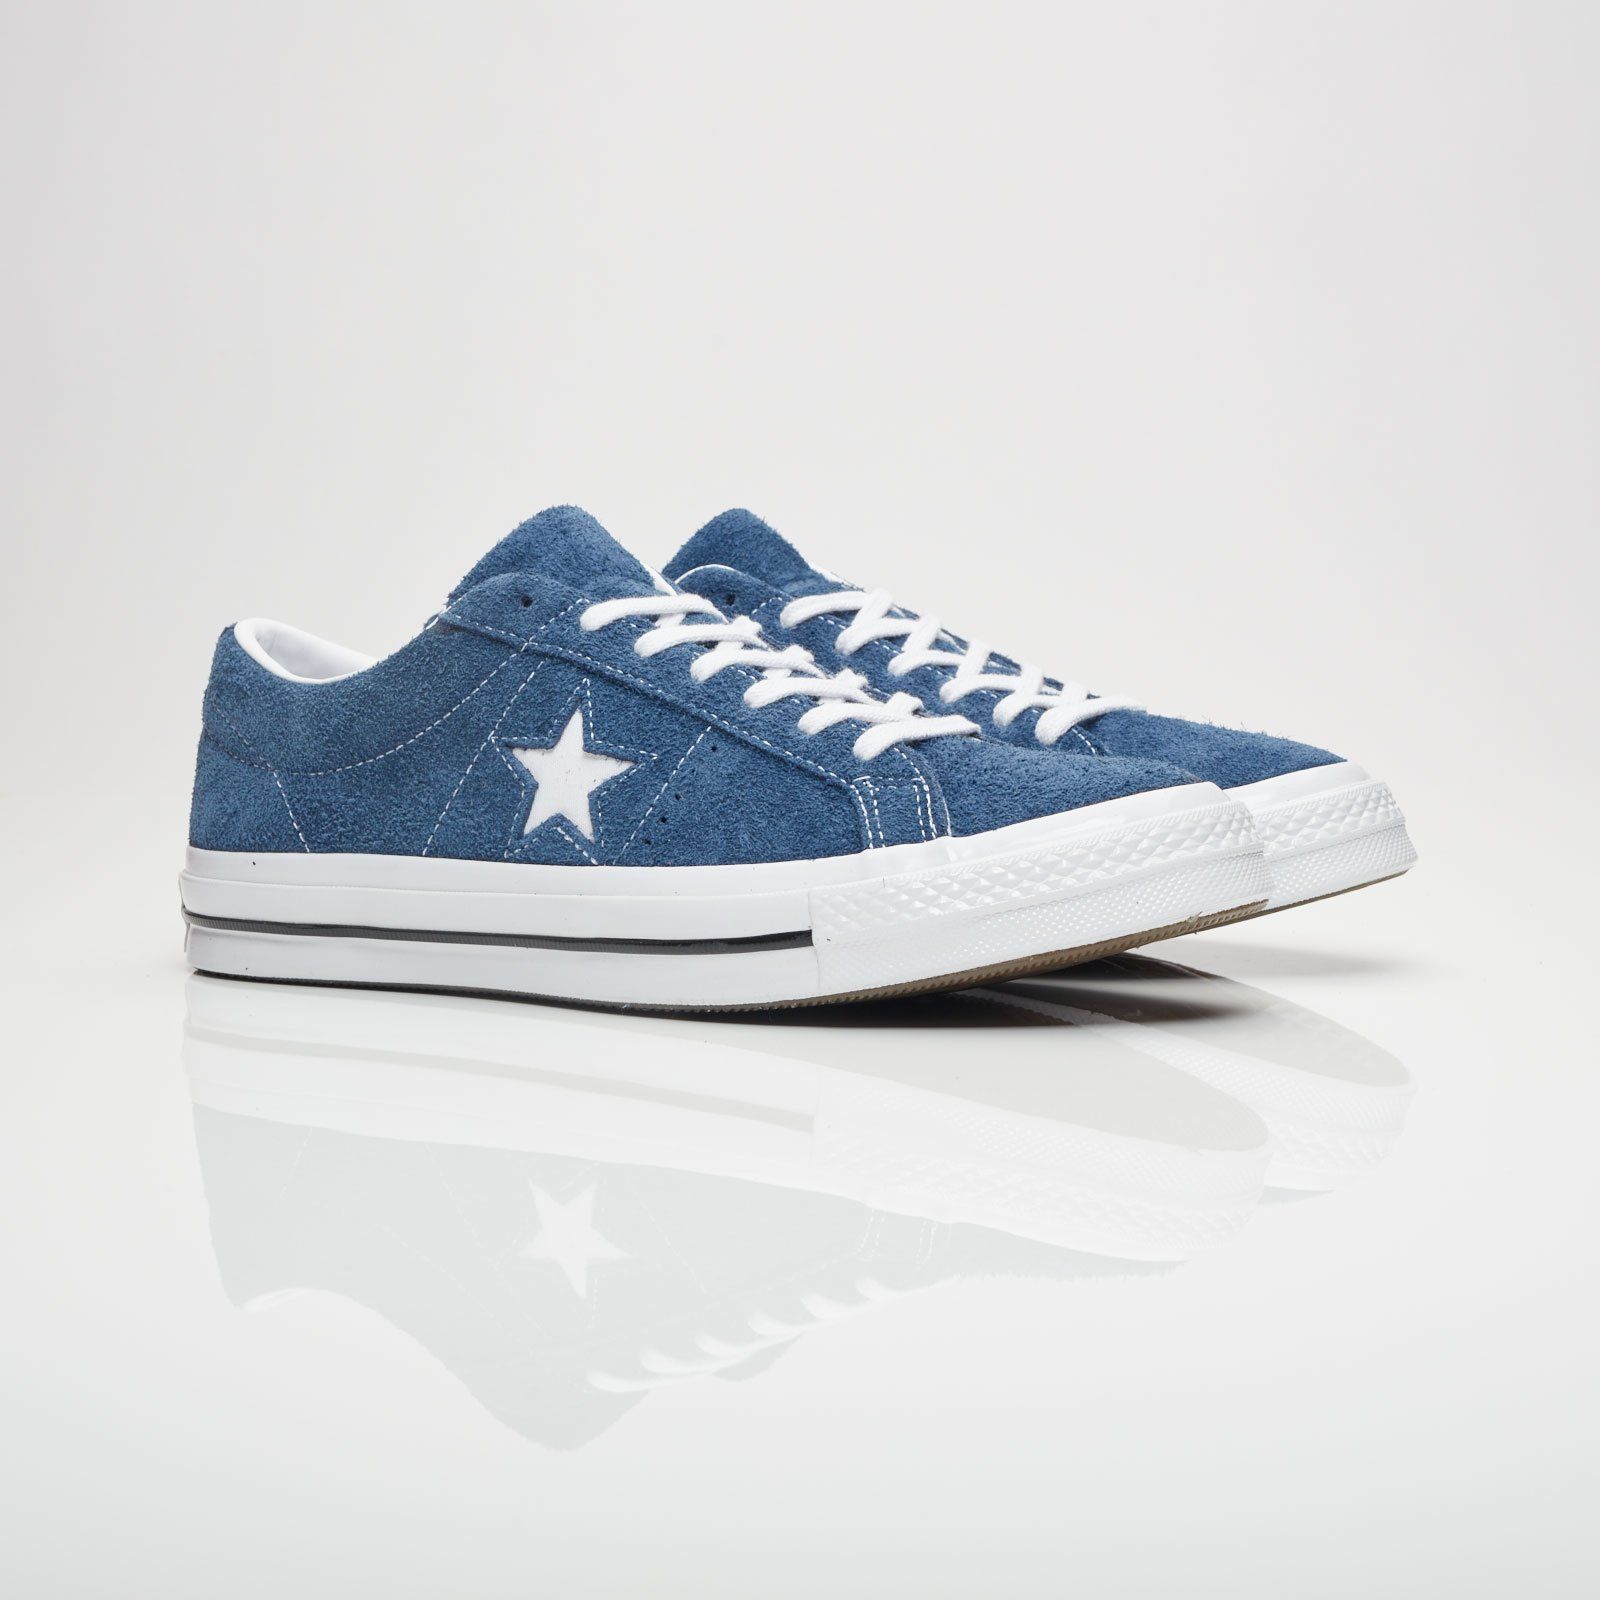 095a8845ebe4 Converse One Star Ox - 158371c - Sneakersnstuff